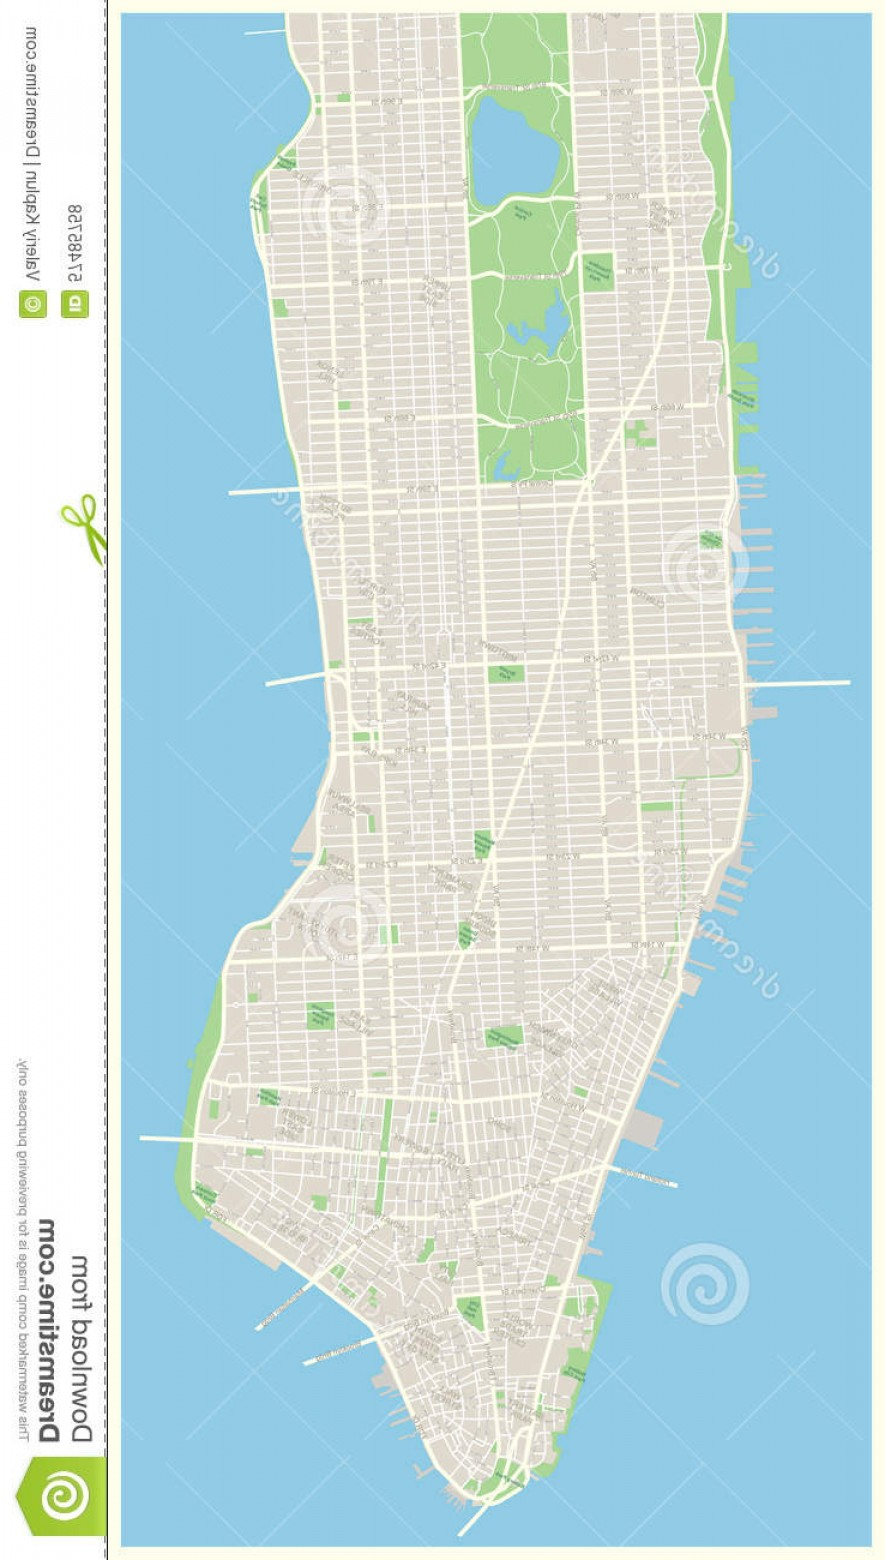 Midtown East Map Vector: Stock Illustration New York Map Lower Mid Manhattan Highly Detailed Vector Including All Streets Parks Names Subdistricts Points Image